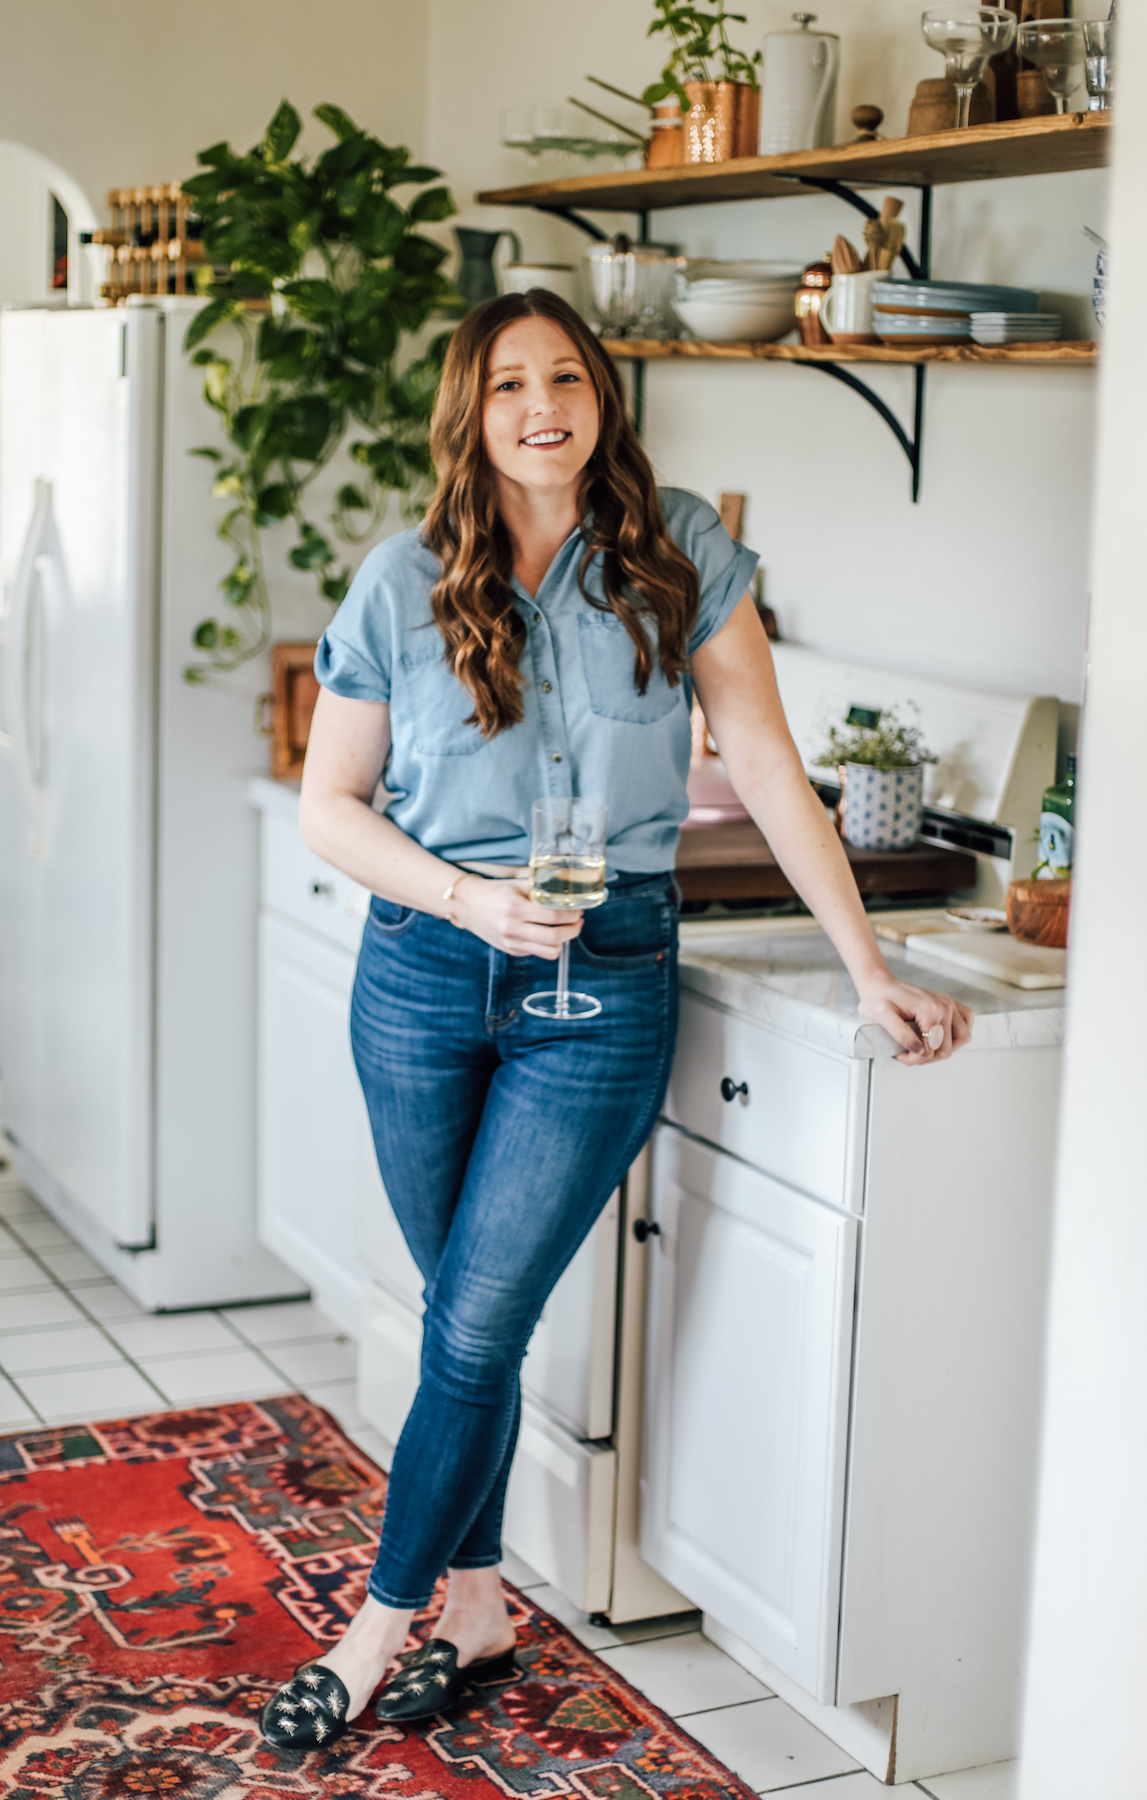 Rental Kitchen Makeover After with Elizabeth Van Lierde